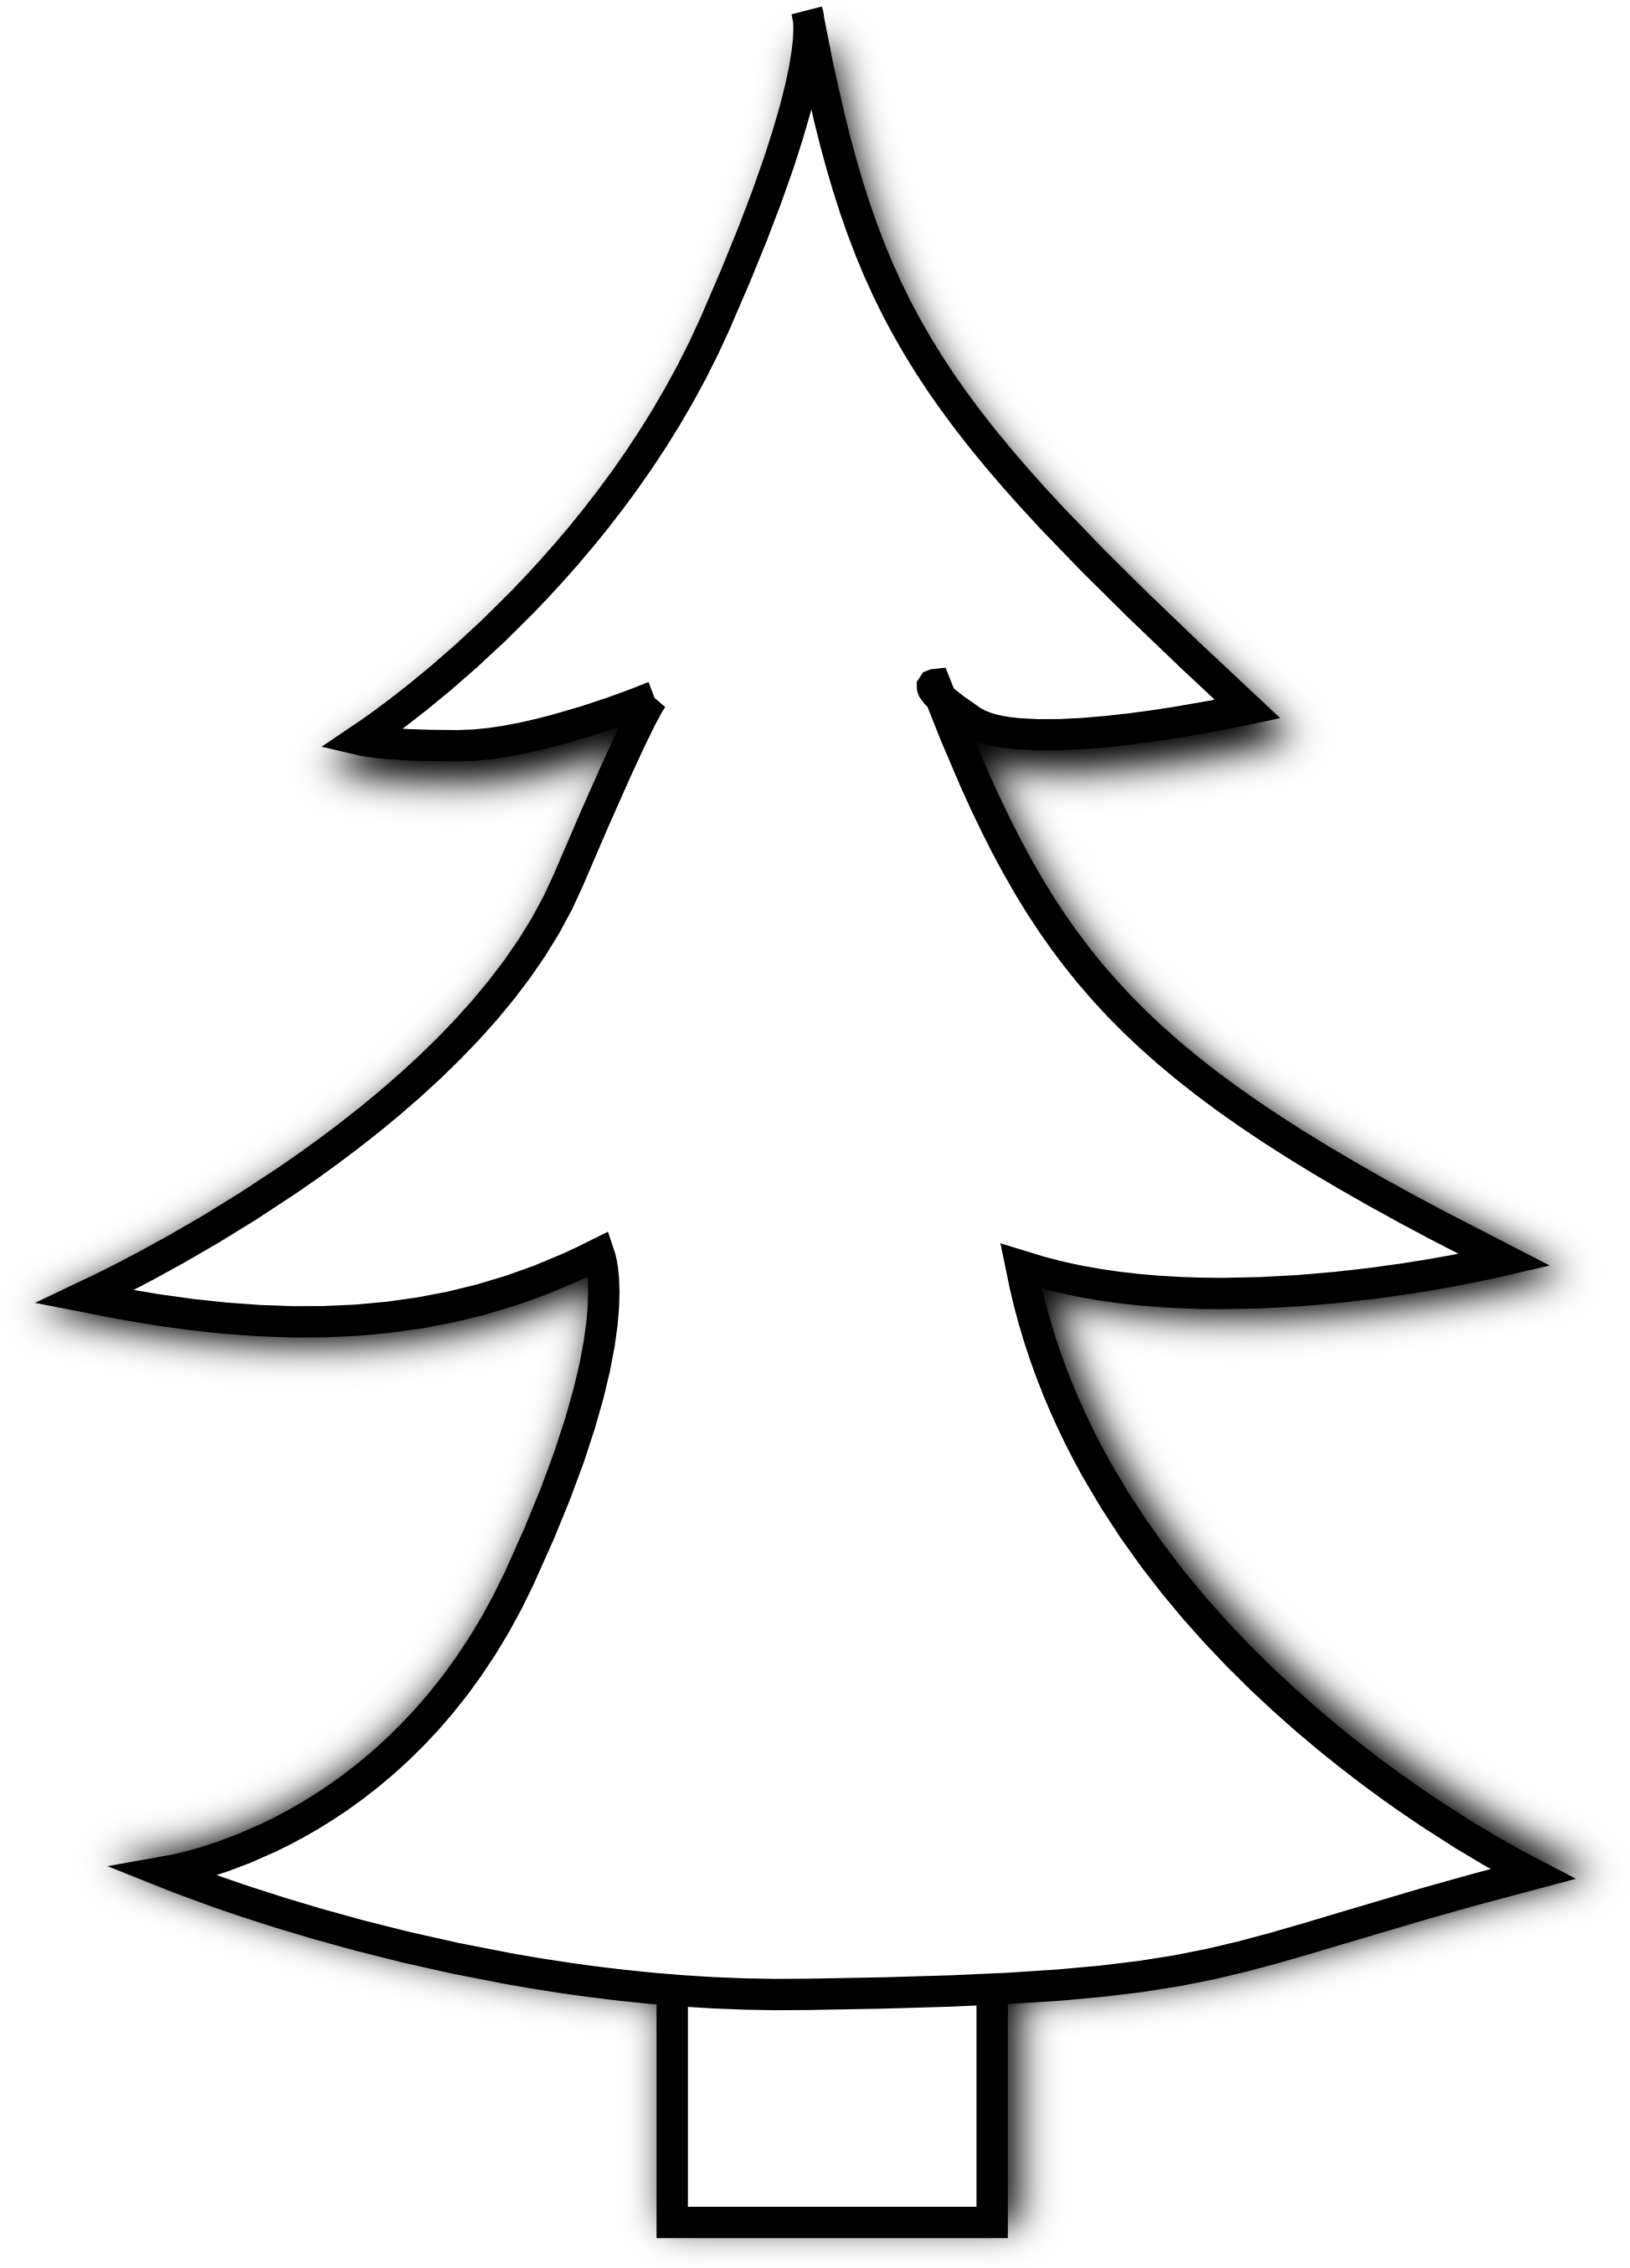 christmas tree clipart black and white transparent